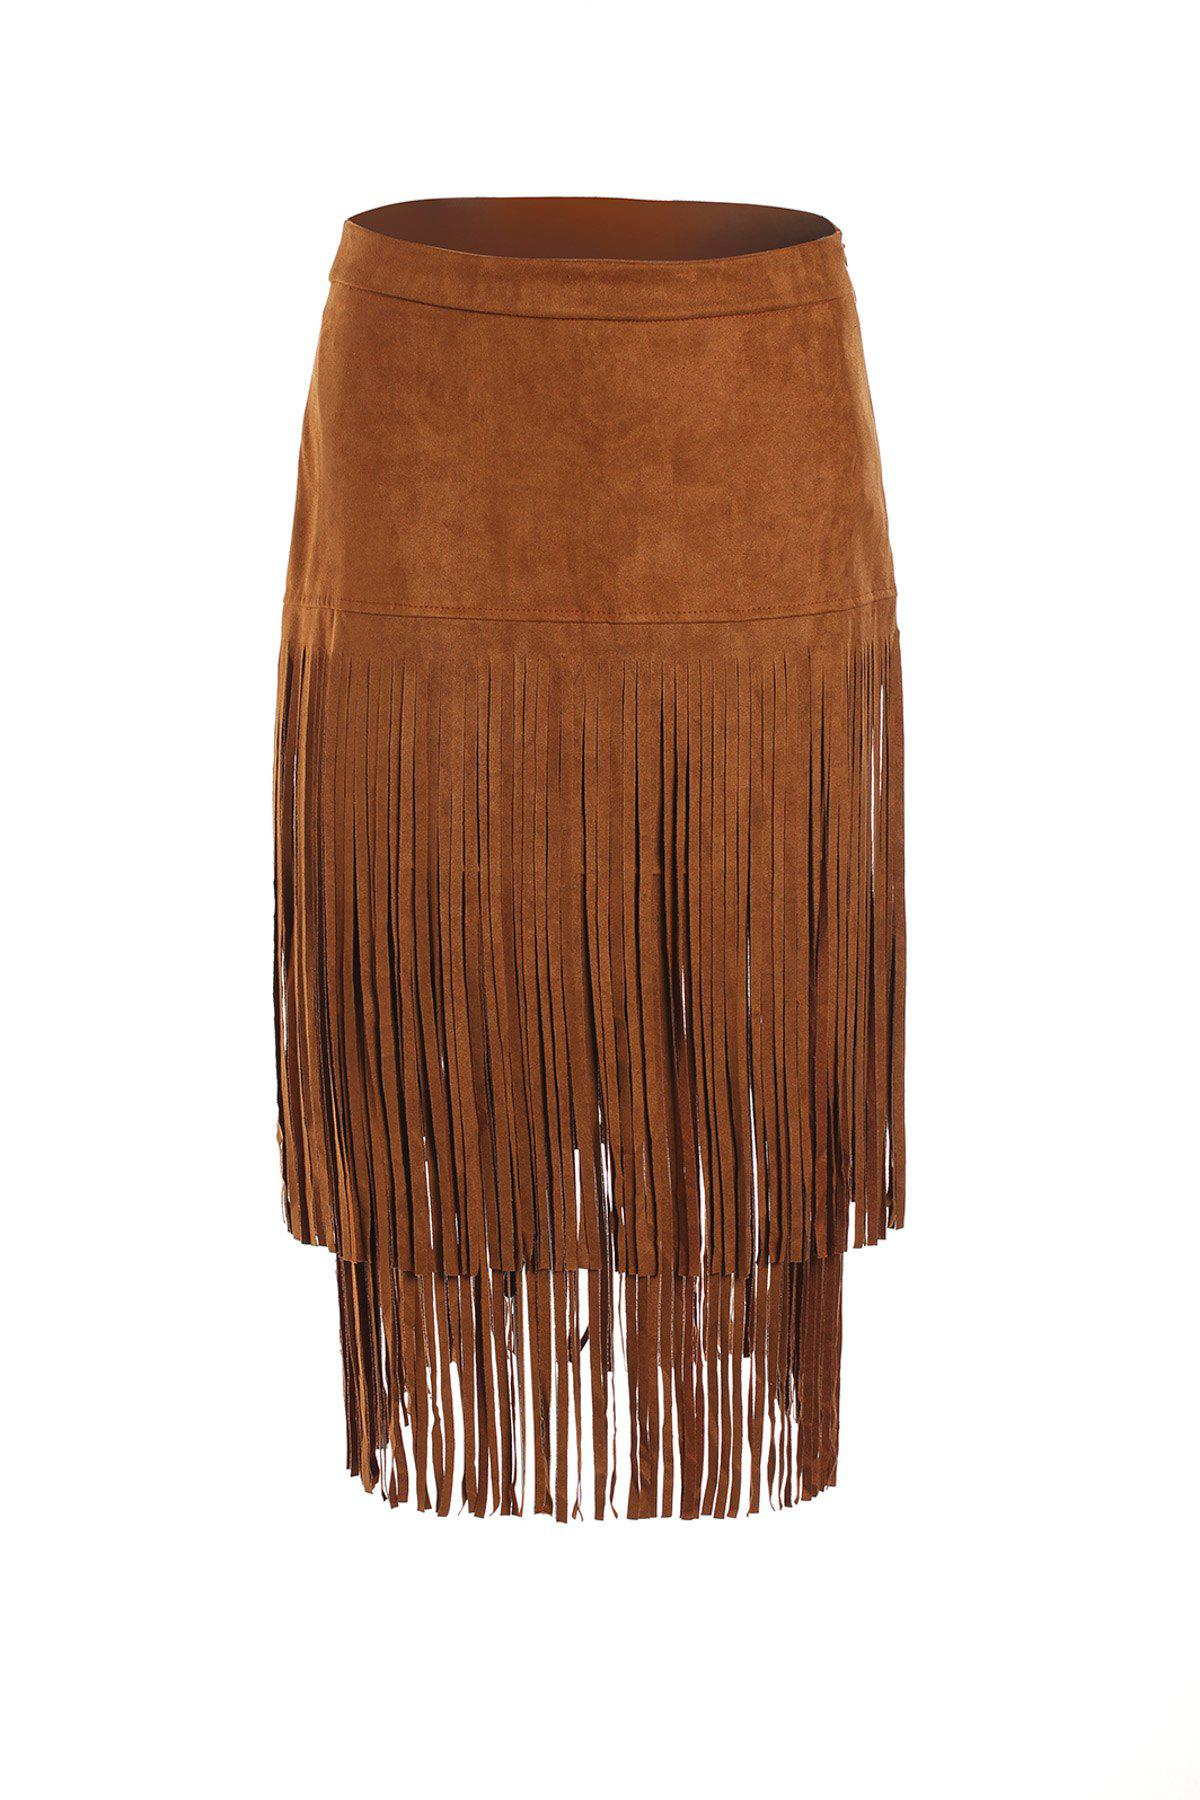 Stylish Women's Multi-Layered Fringe Solid Color Suede Skirt - BROWN M